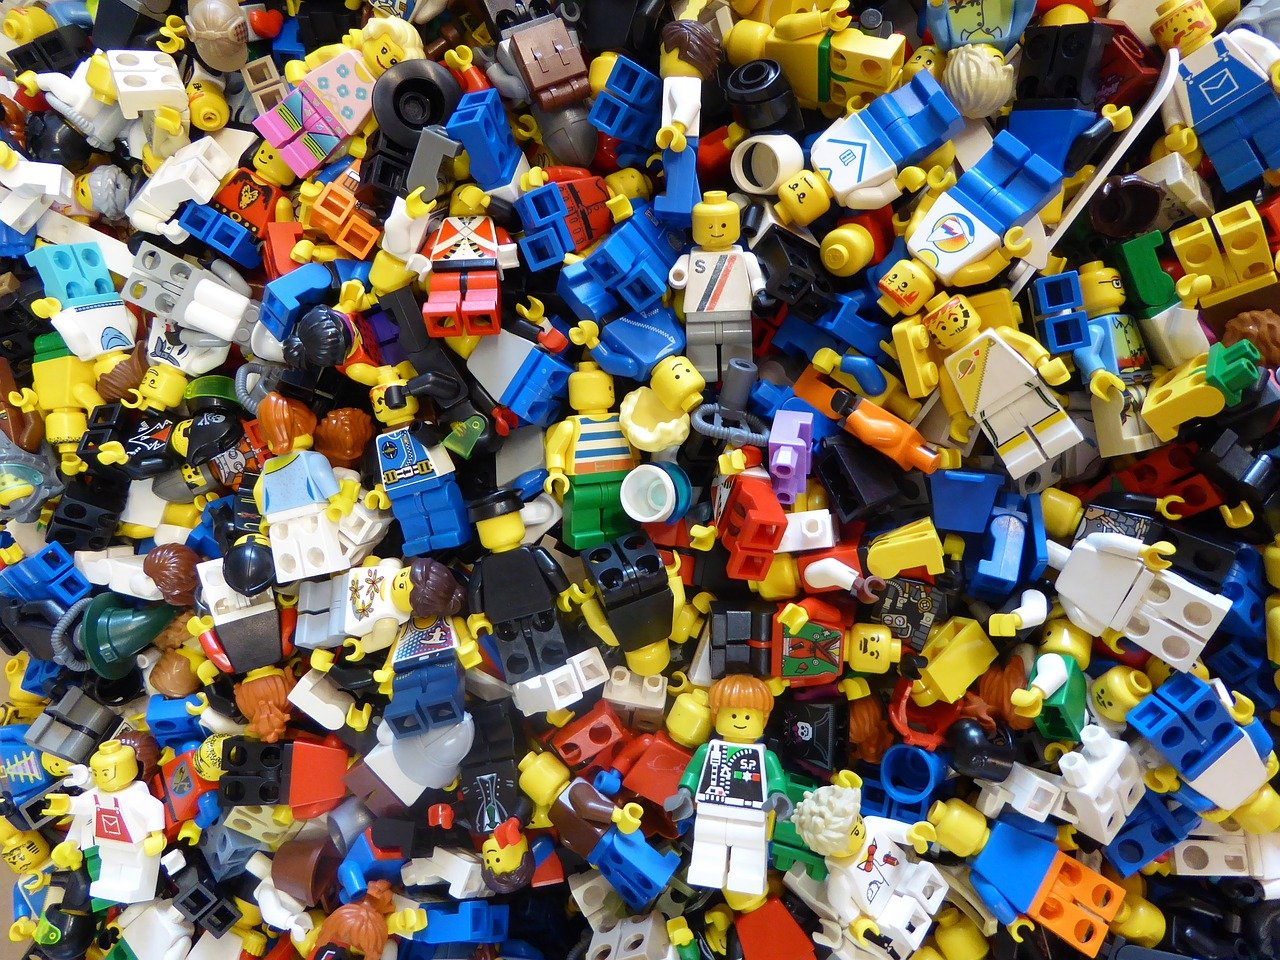 Many Lego men in a pile